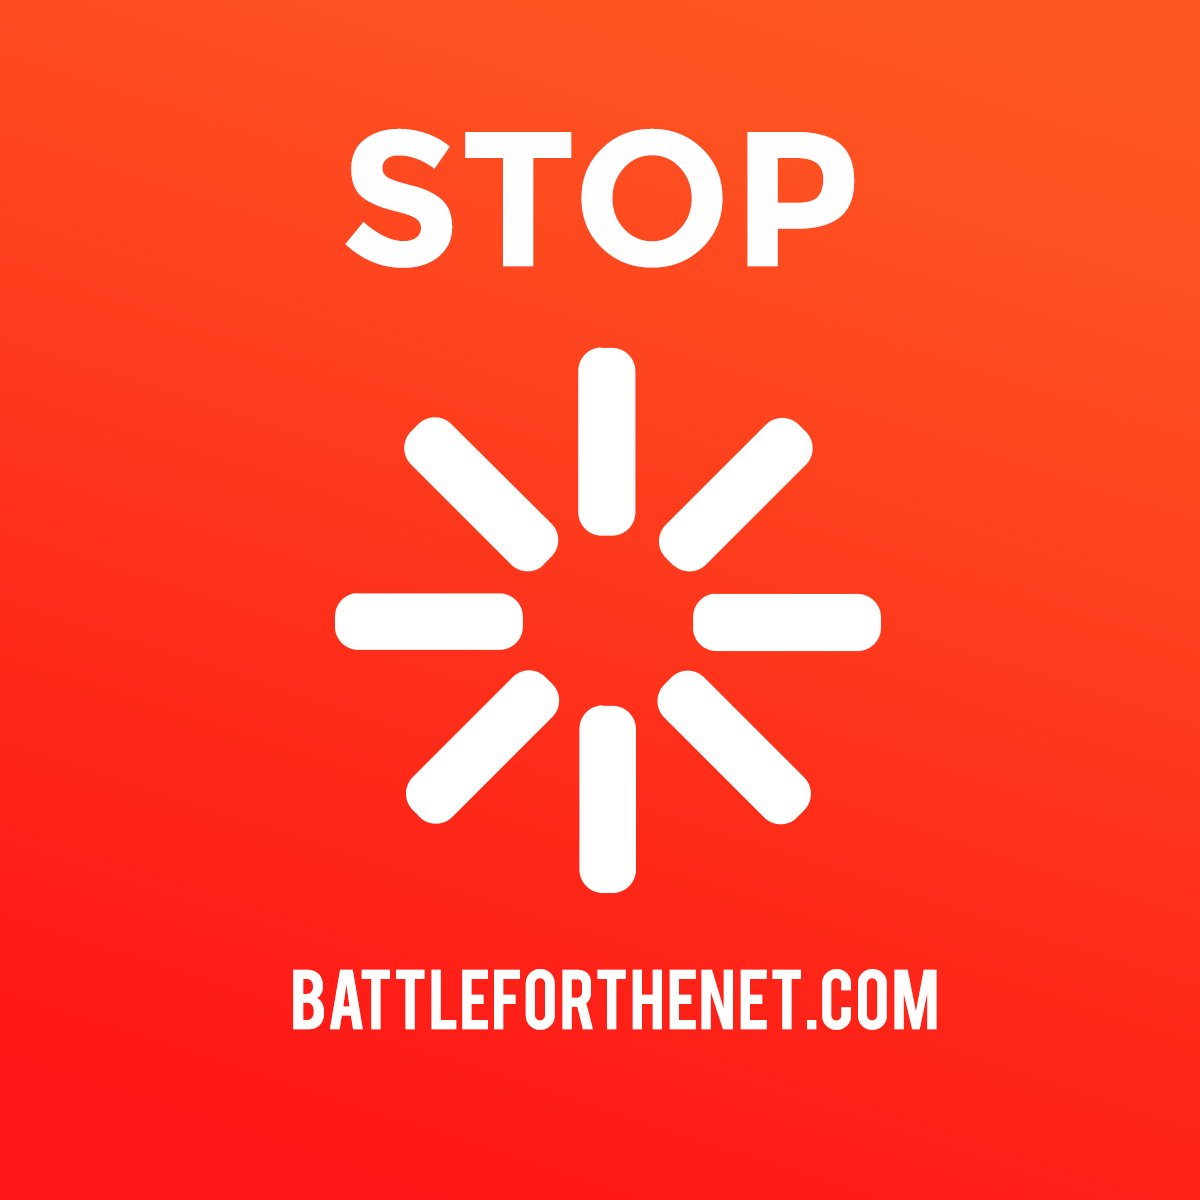 Massive protest to save #NetNeutrality sweeps the Internet